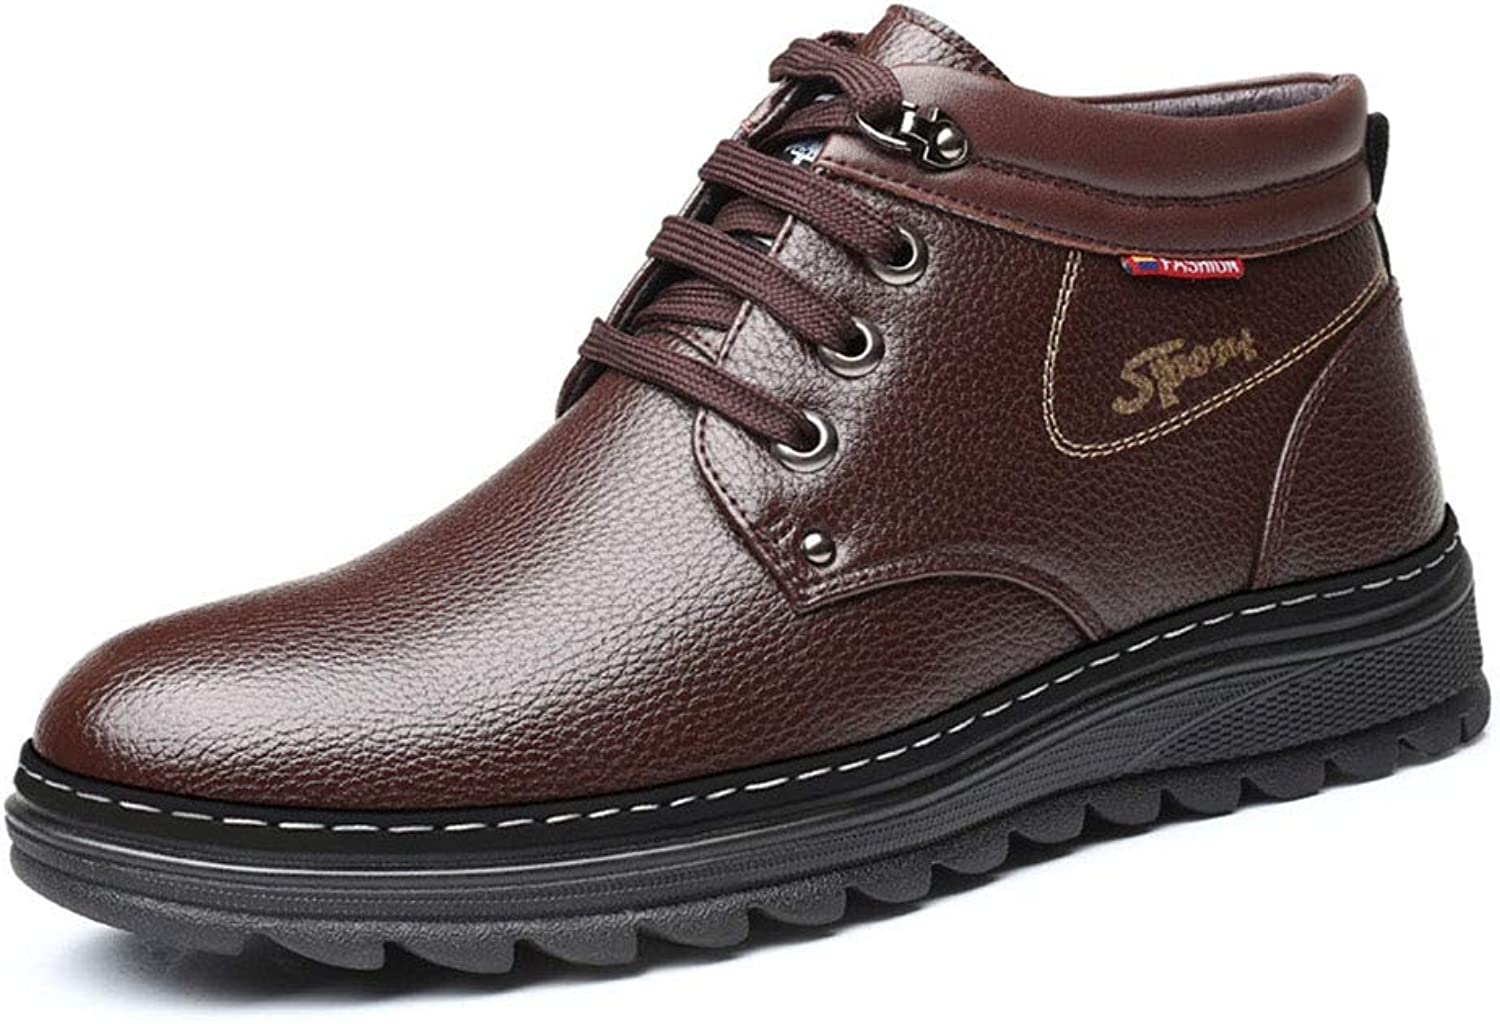 Men's Warm shoes Fashion Comfortable Work Leather shoes Non Slip Waterproof Shock Absorption Lace-up shoes (color   B, Size   41)